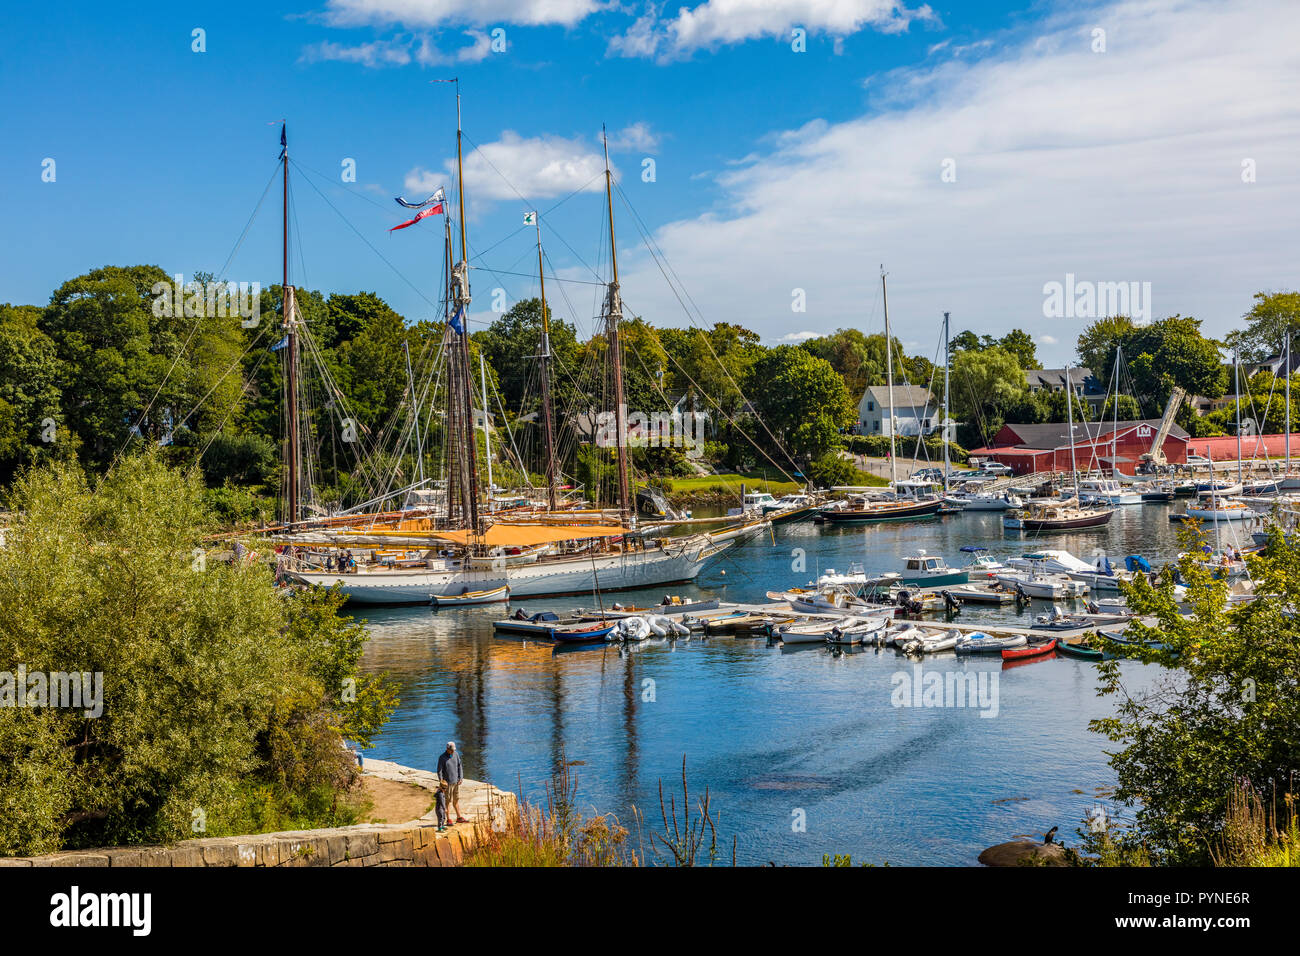 Boats in harbor in Camden Maine in the United States Stock